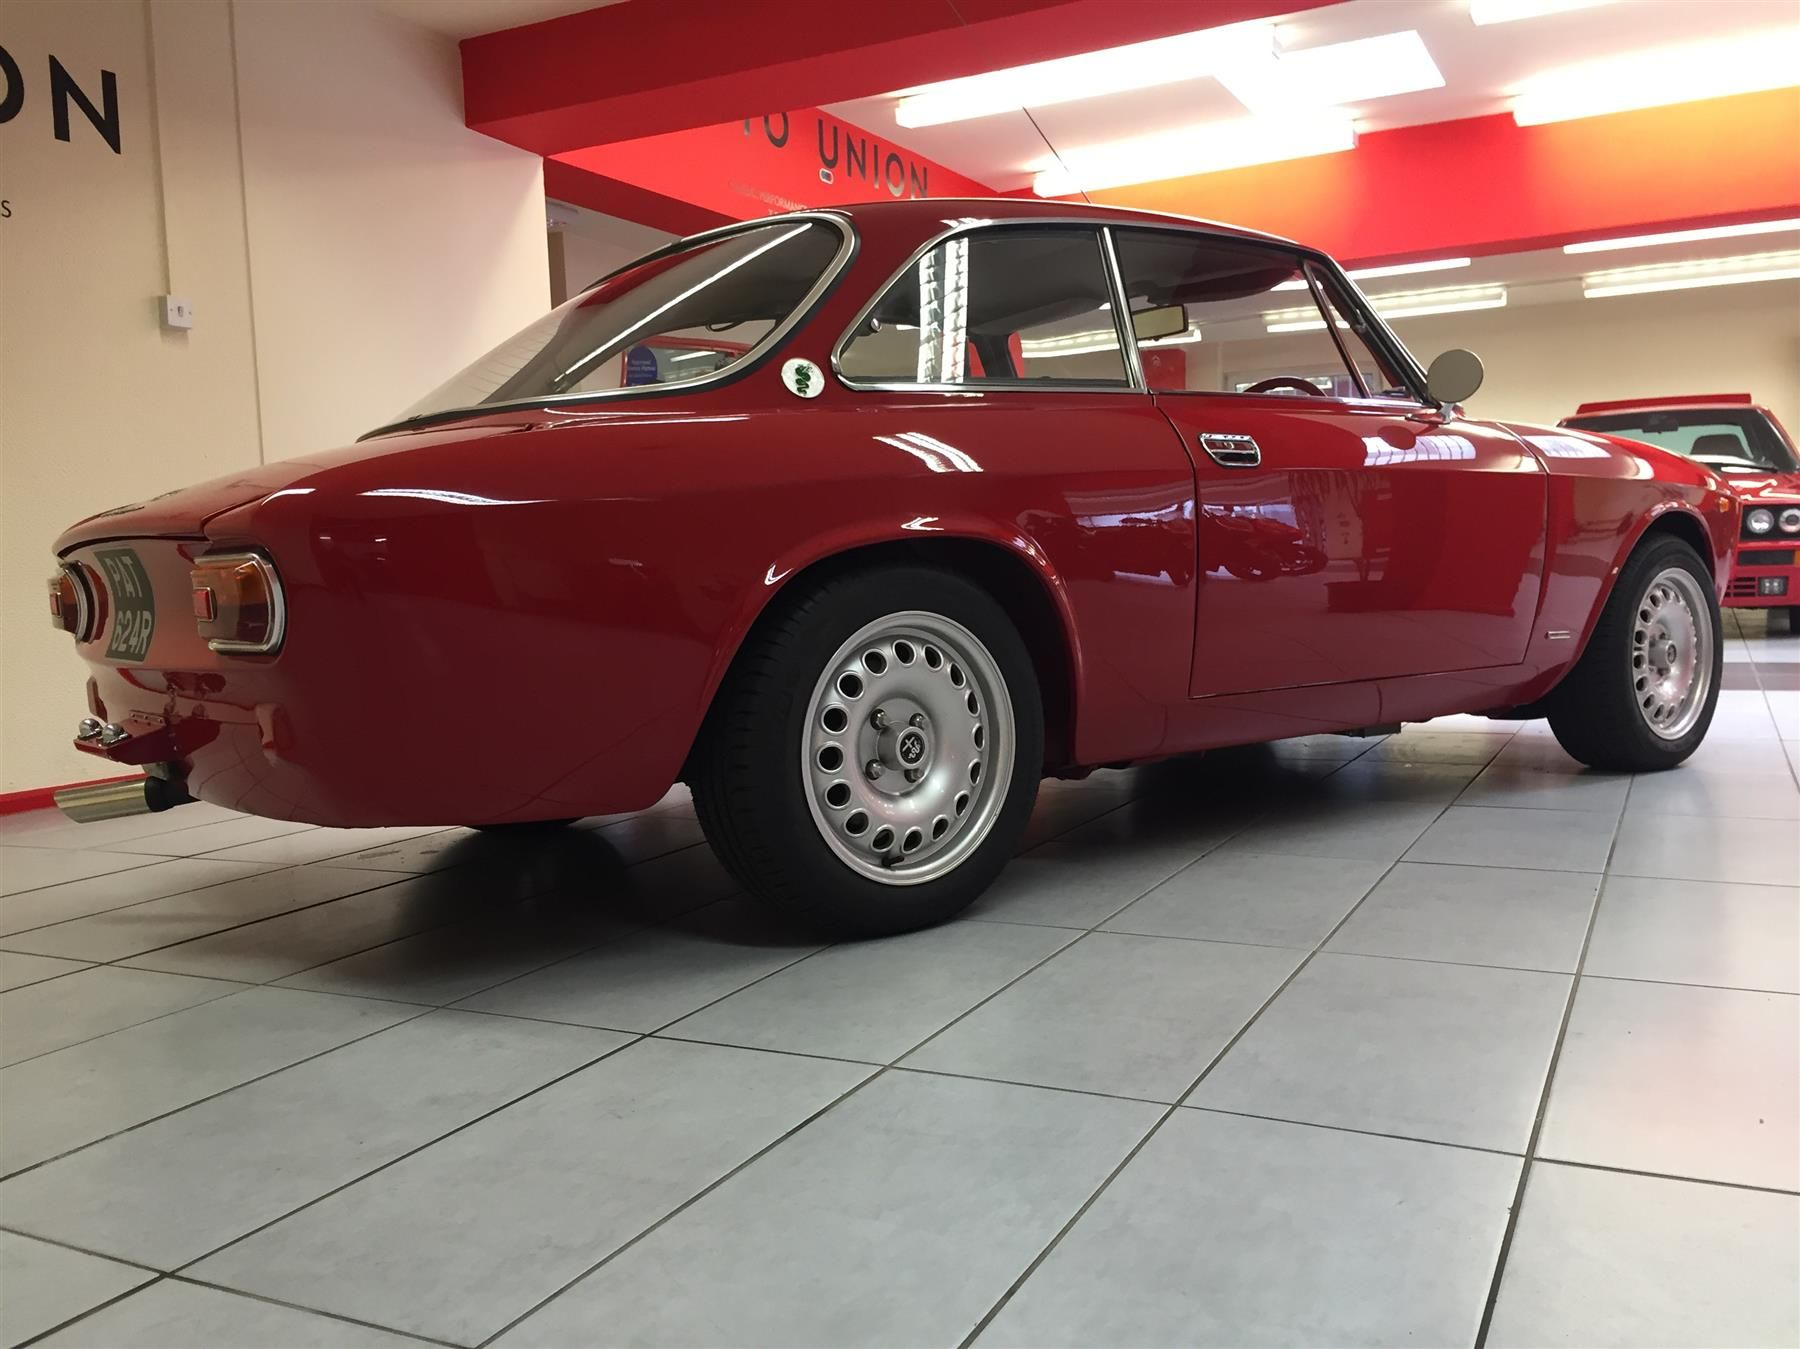 Used 1976 Alfa Romeo GT Junior for sale in Northants from Auto ...